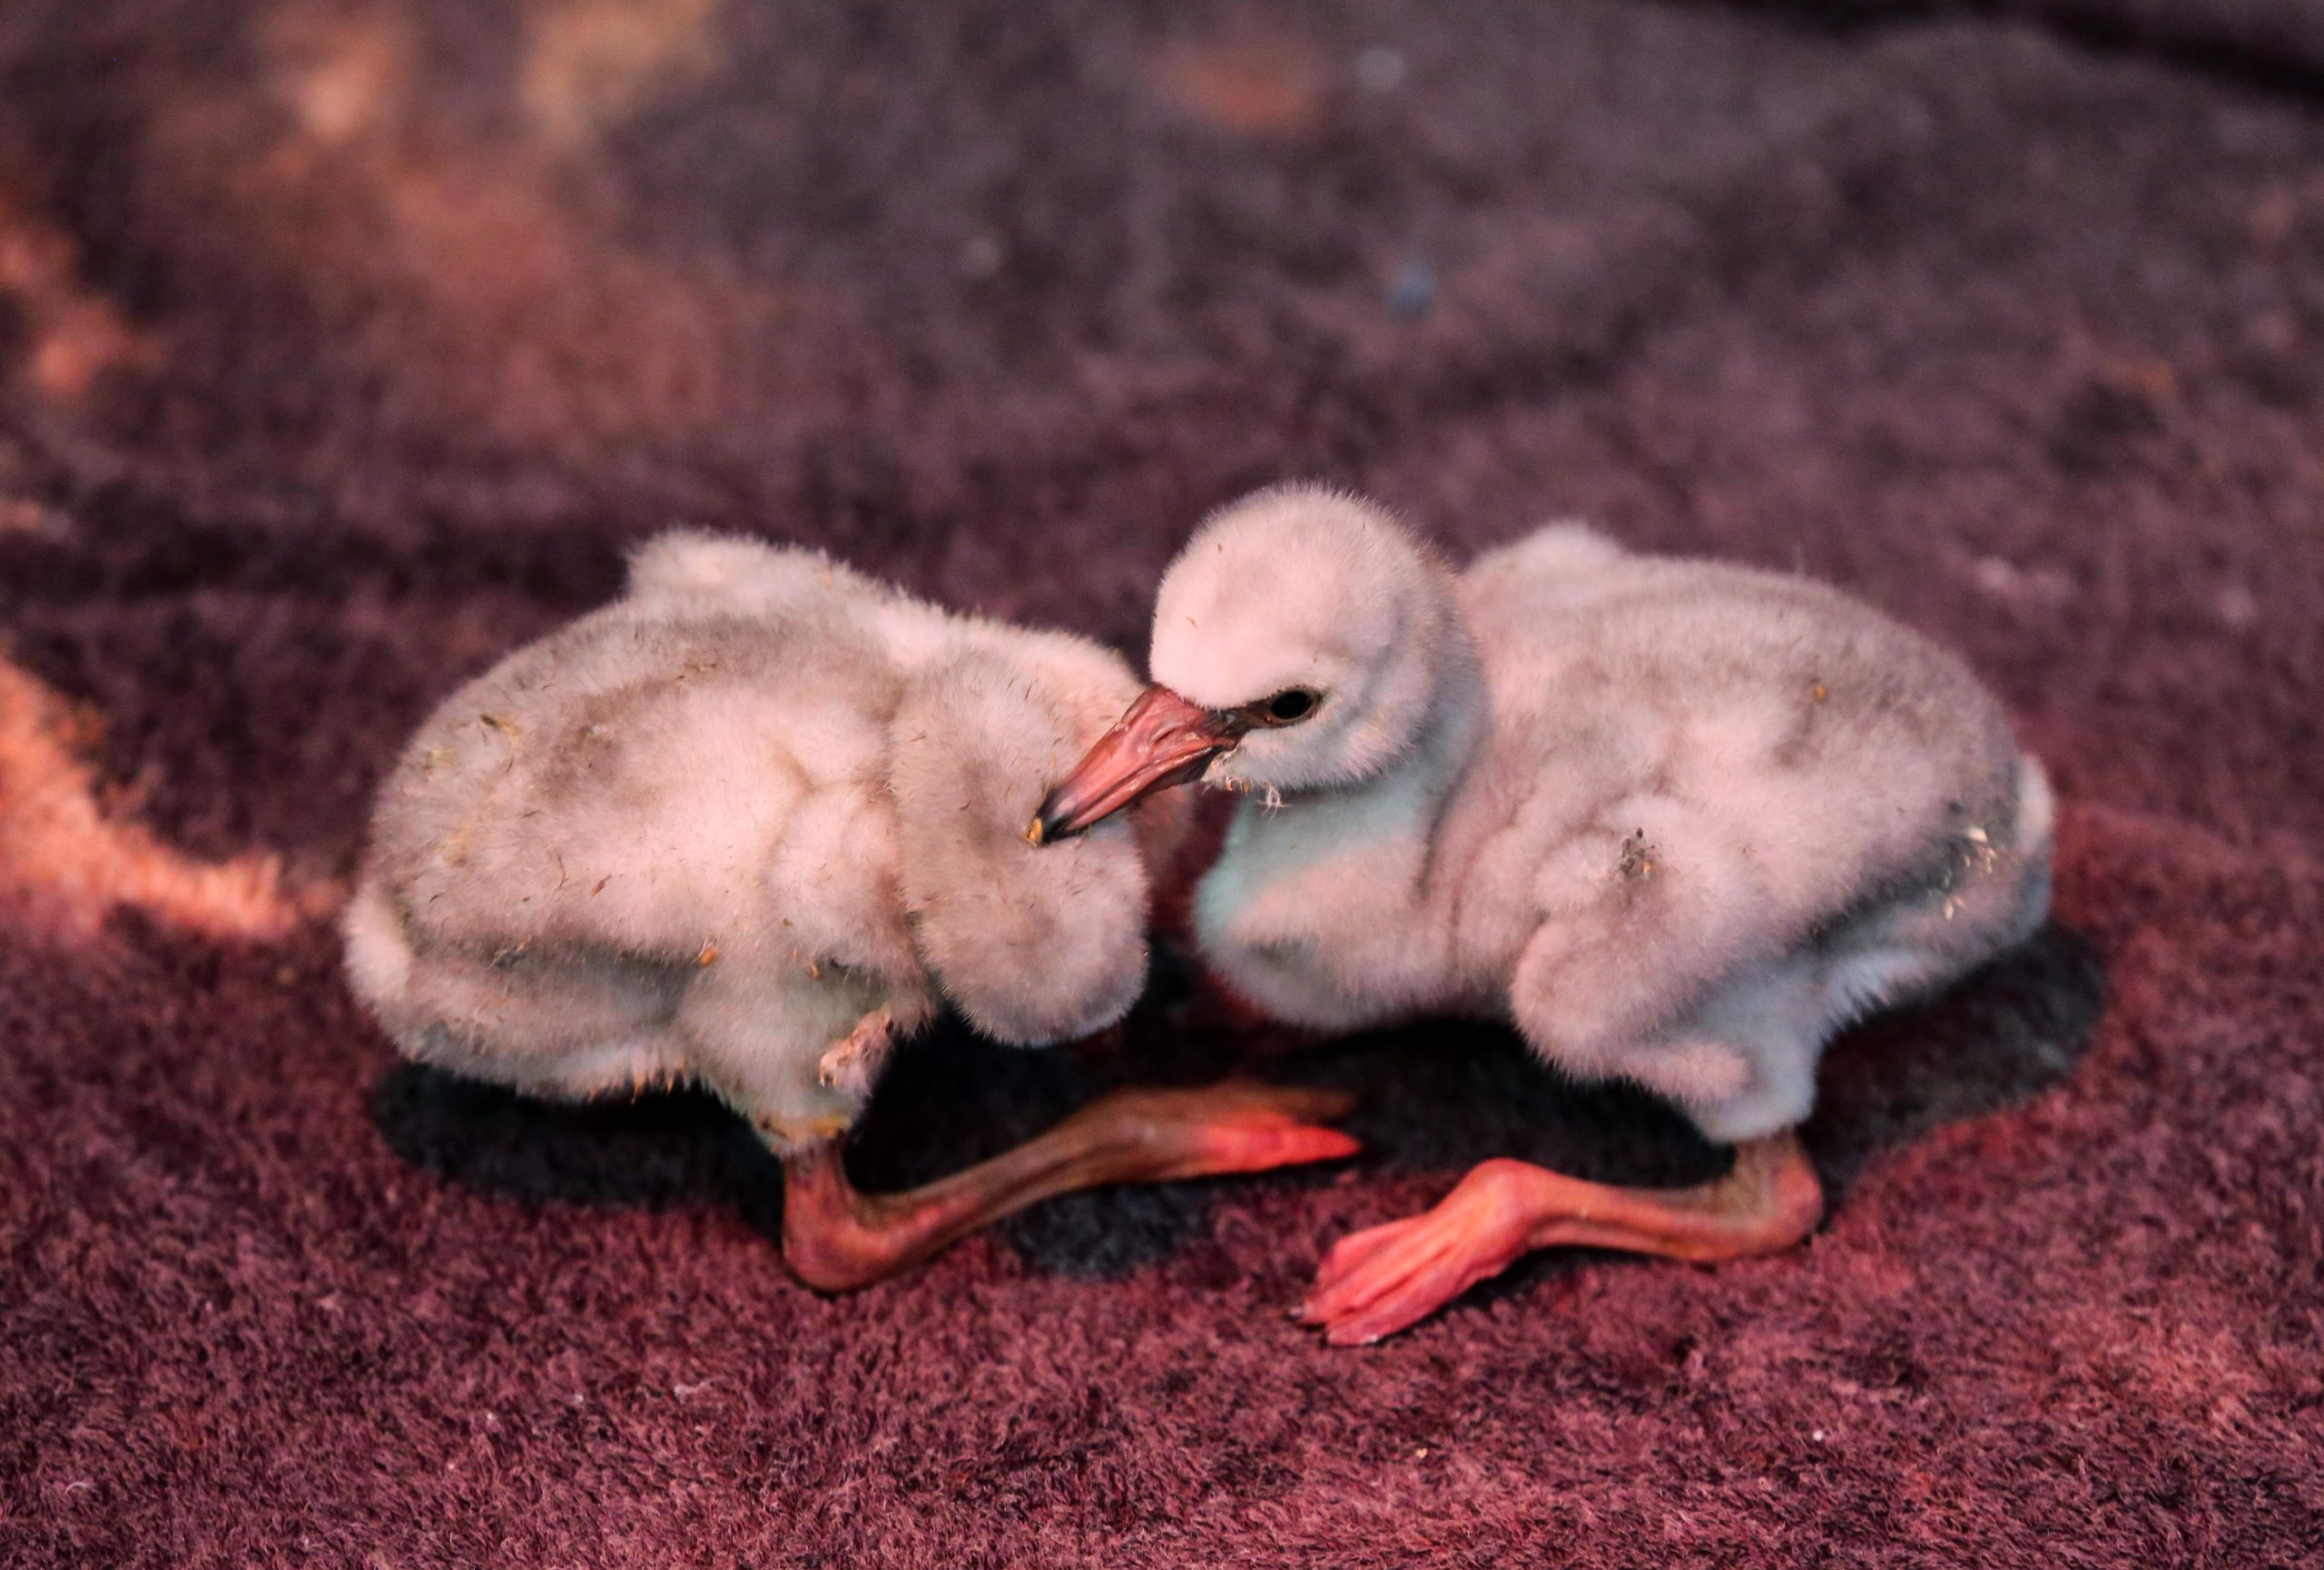 Drought threatens thousands of flamingo chicks in South Africa